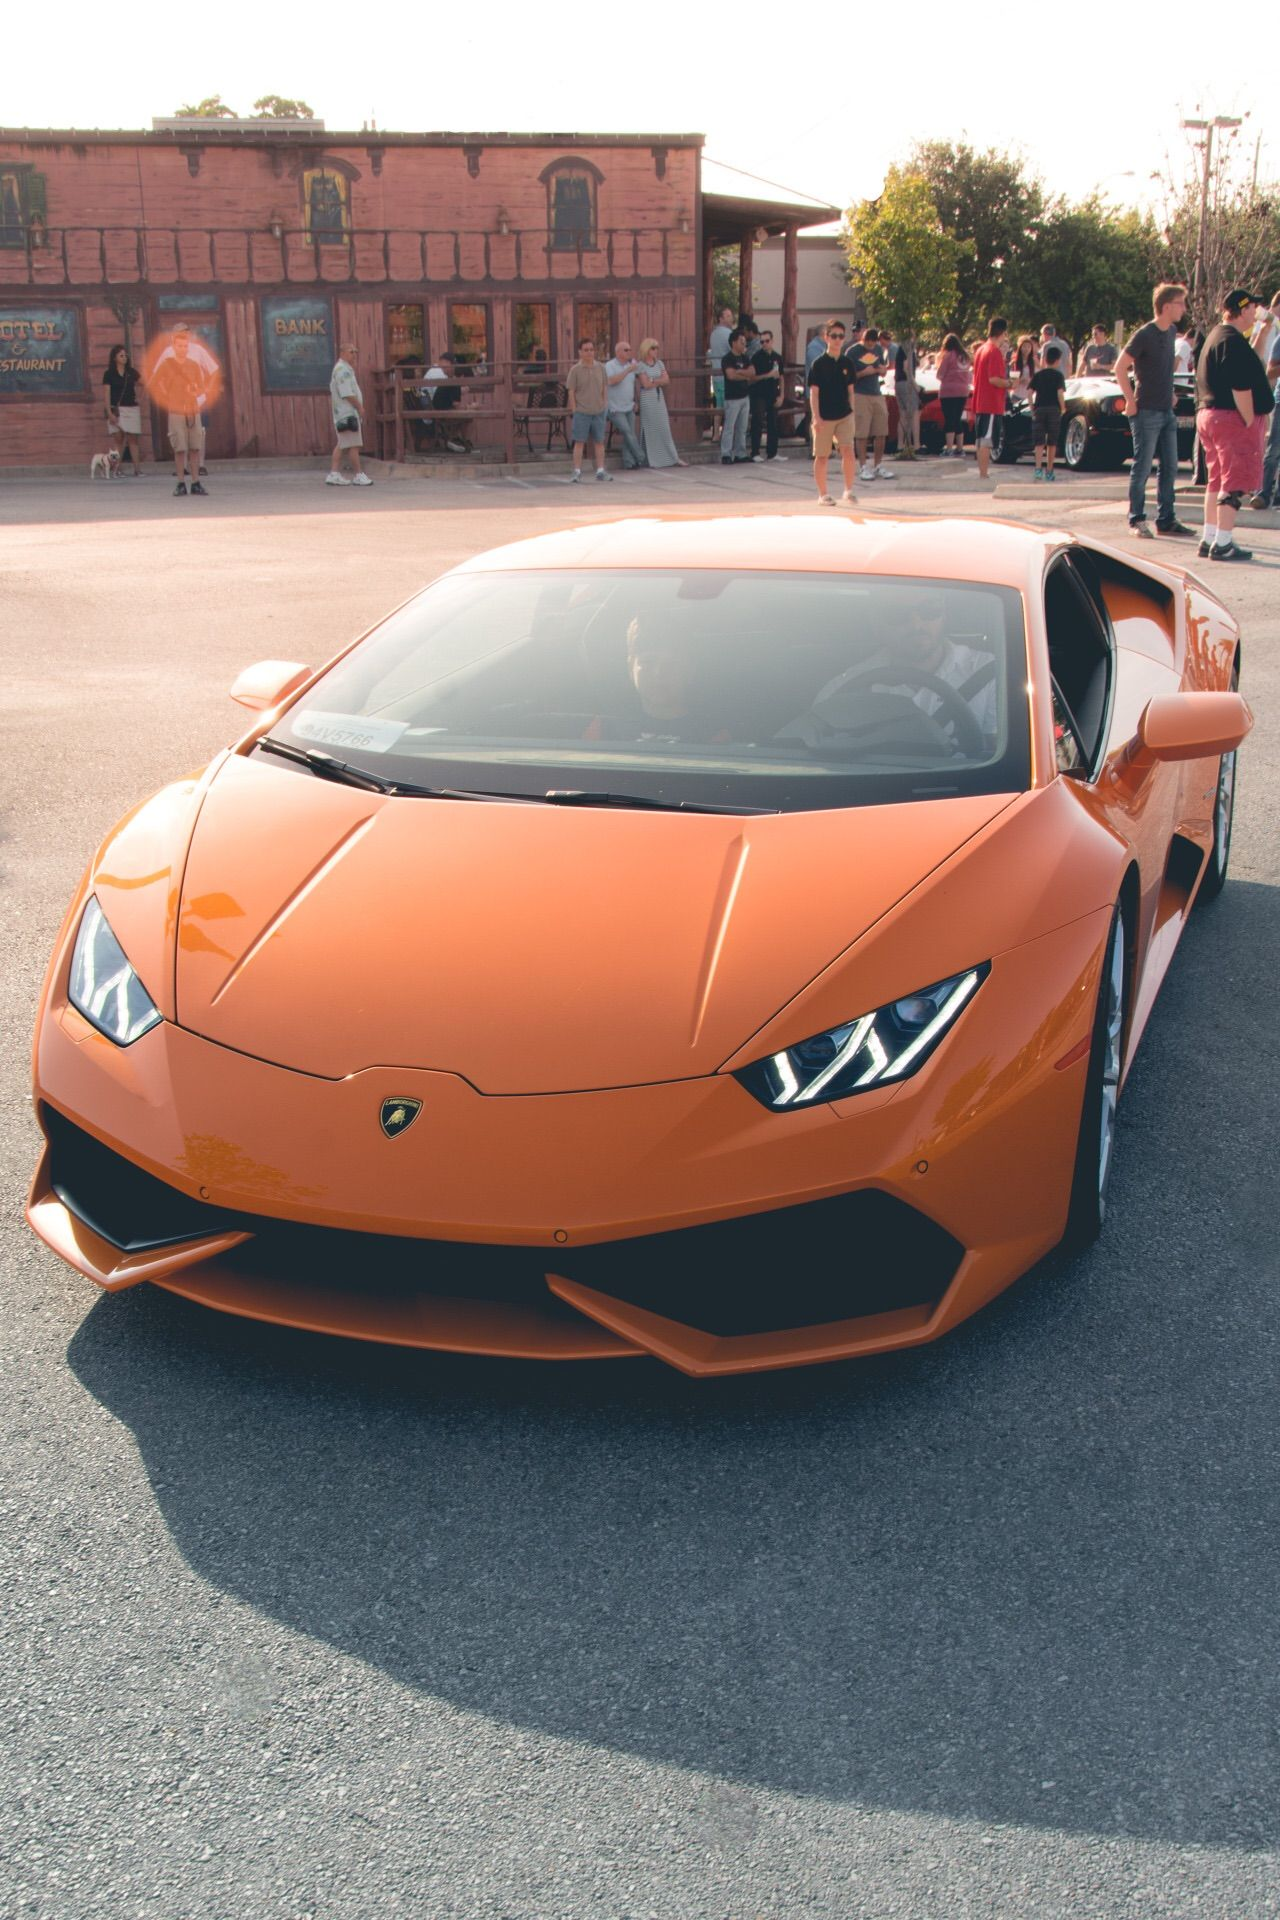 watch t my insurance i and for don youtube maintenance do why lamborghini own